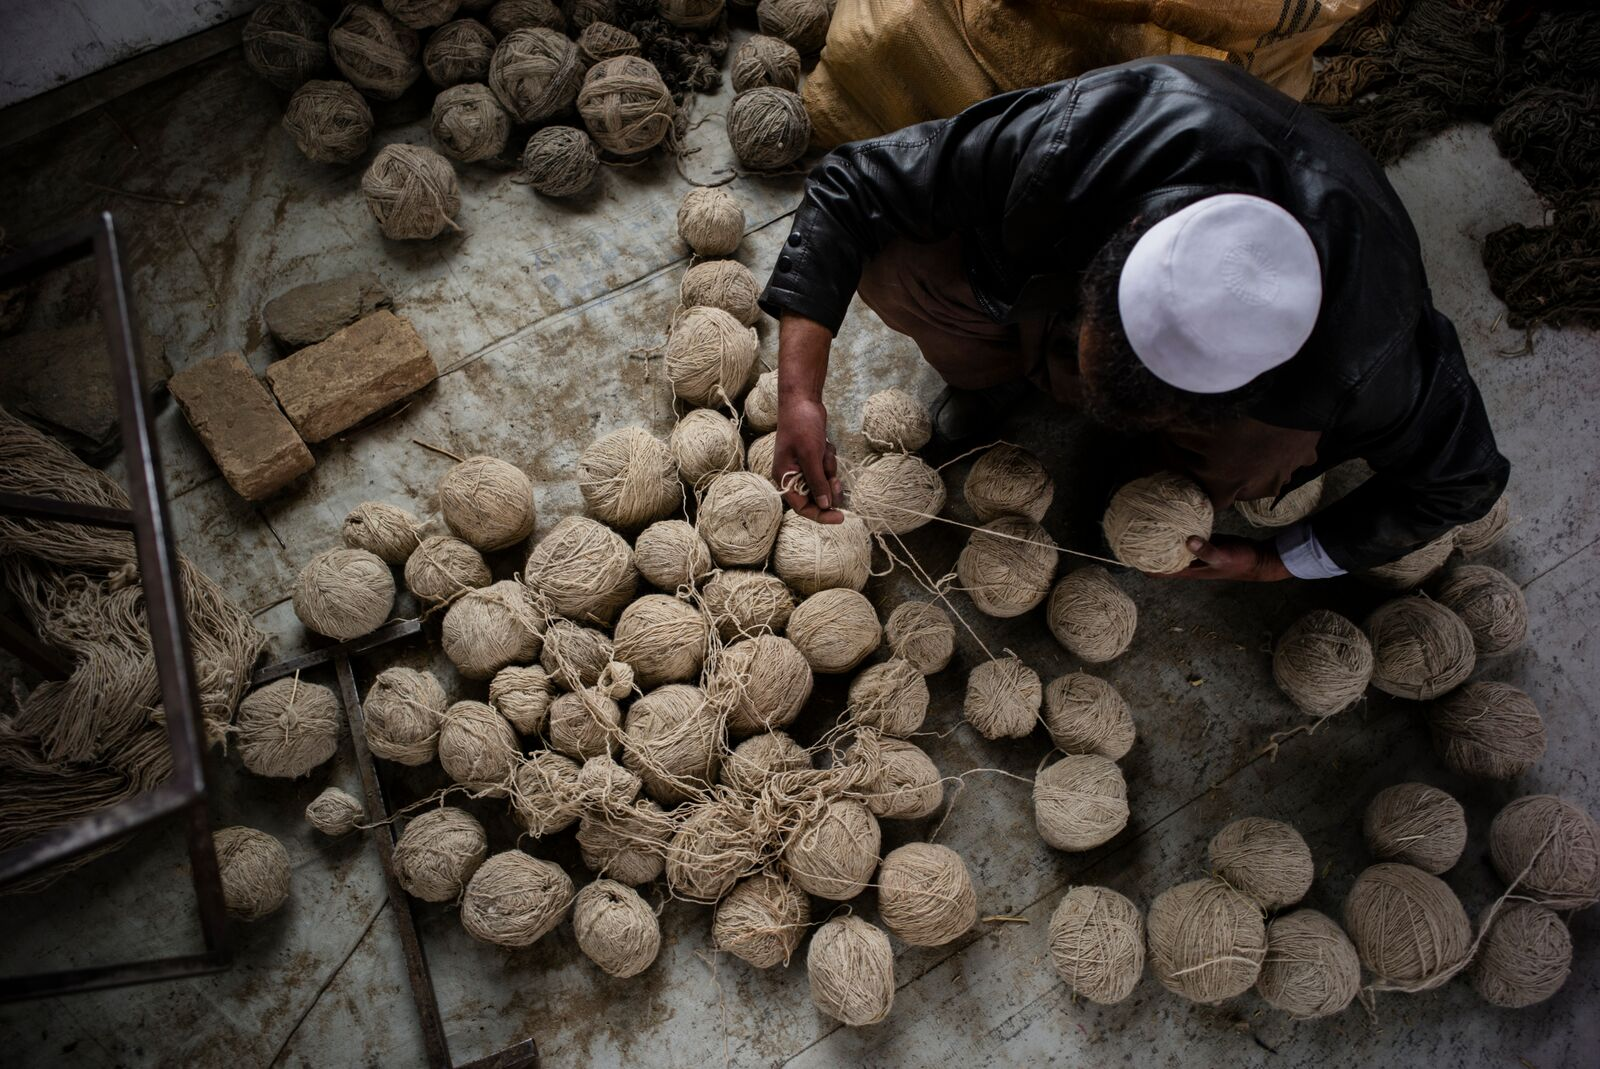 Afghani craftsmen with balls of yarn, Ishkar, Black Friday